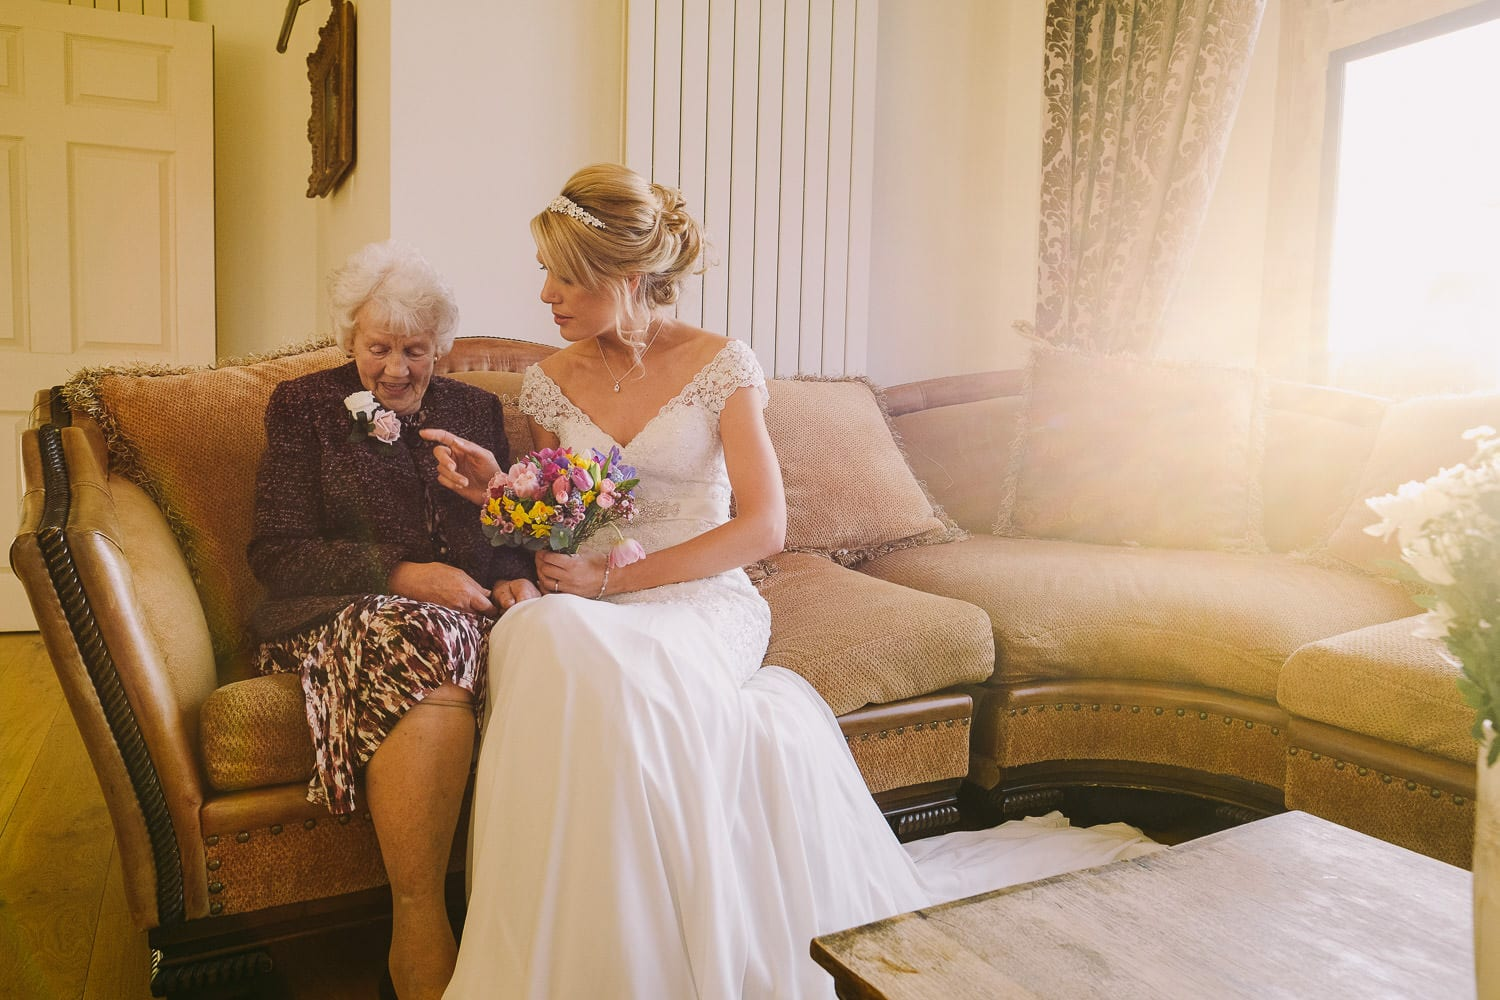 The bride takes a moment with her Grandma